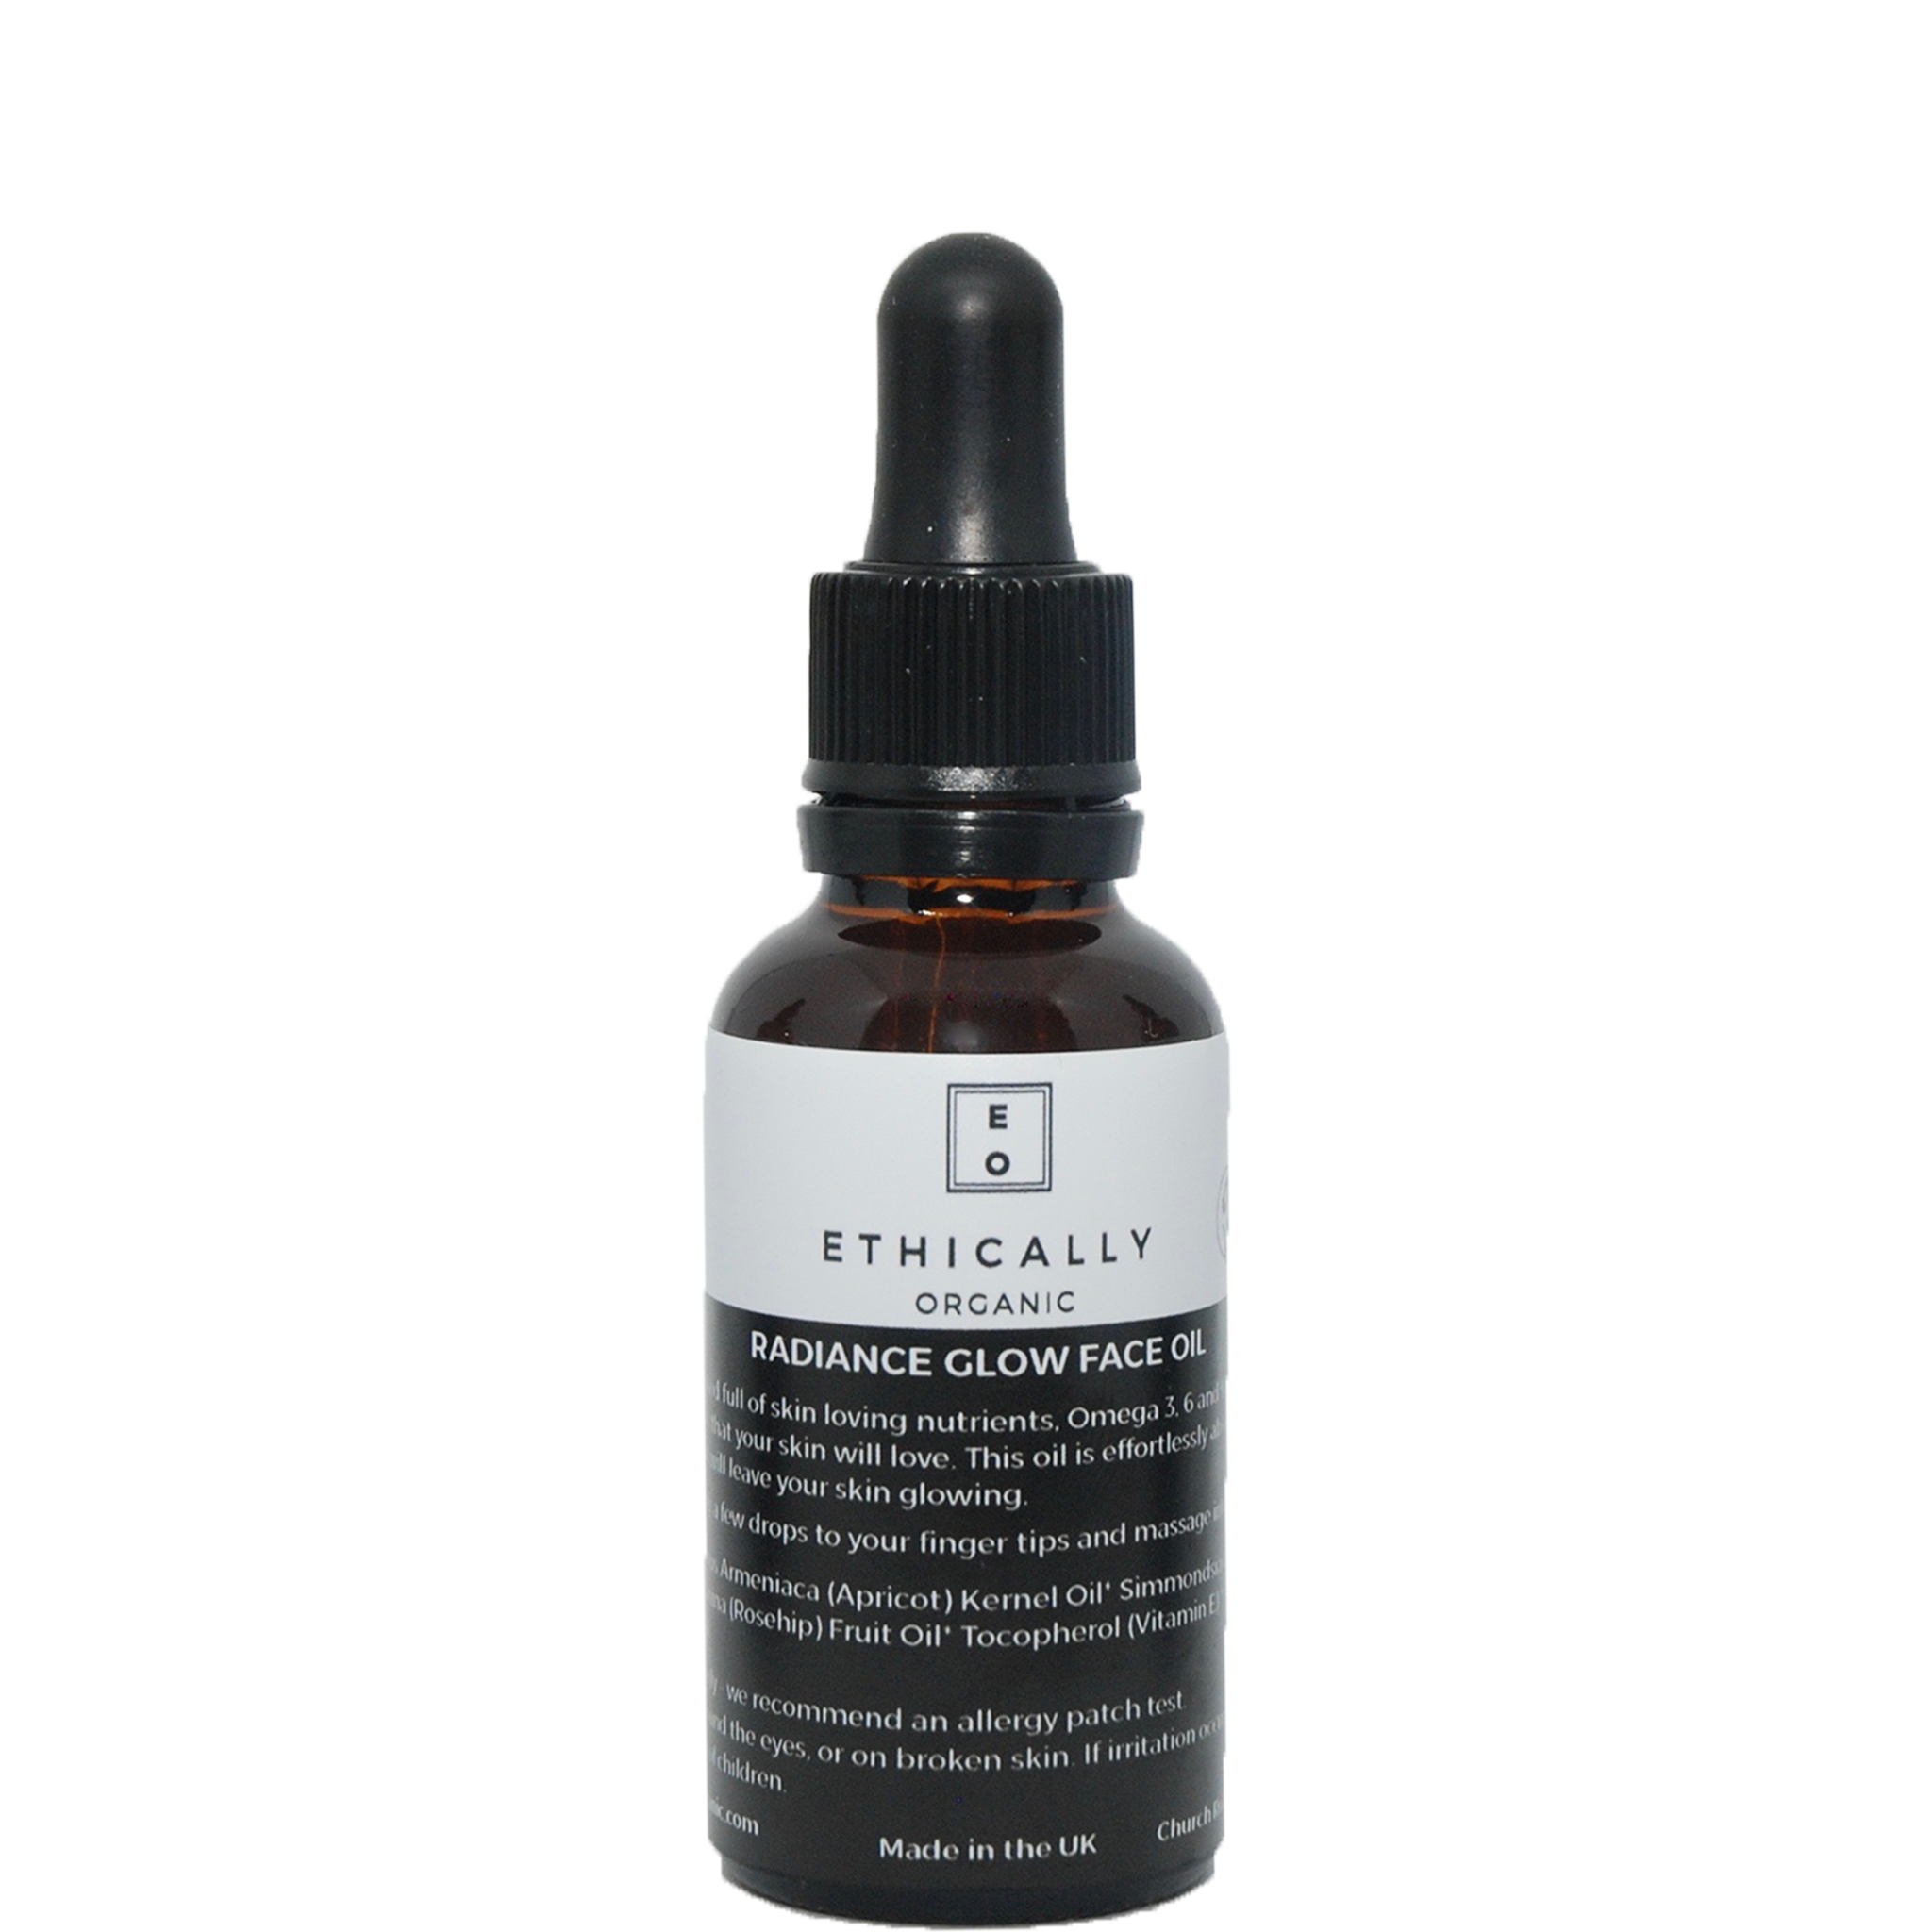 Radiance Glow Face Oil